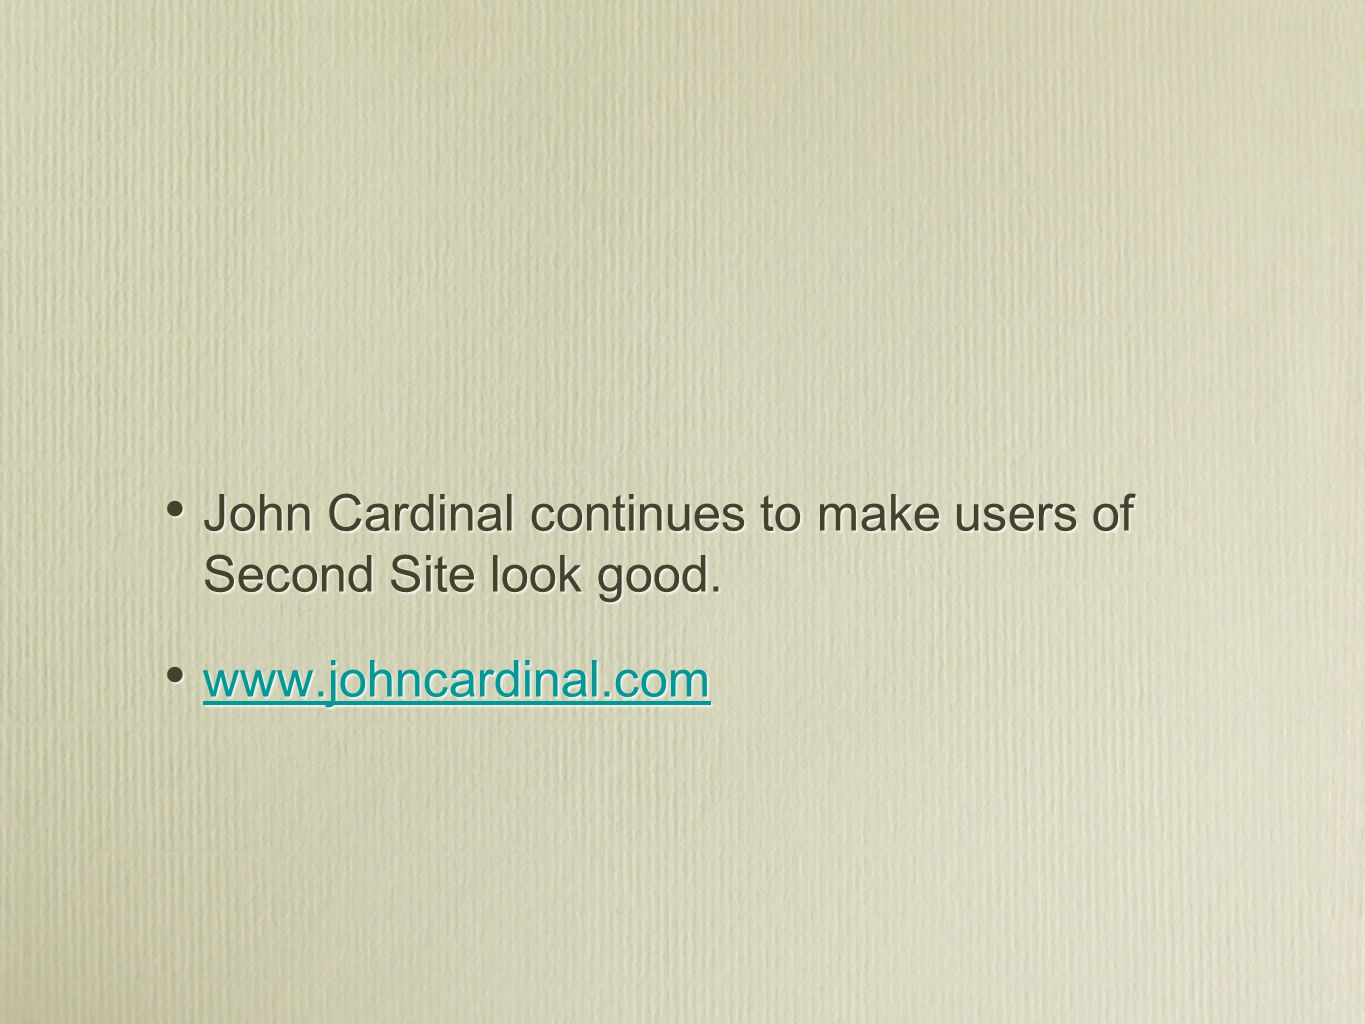 John Cardinal continues to make users of Second Site look good.